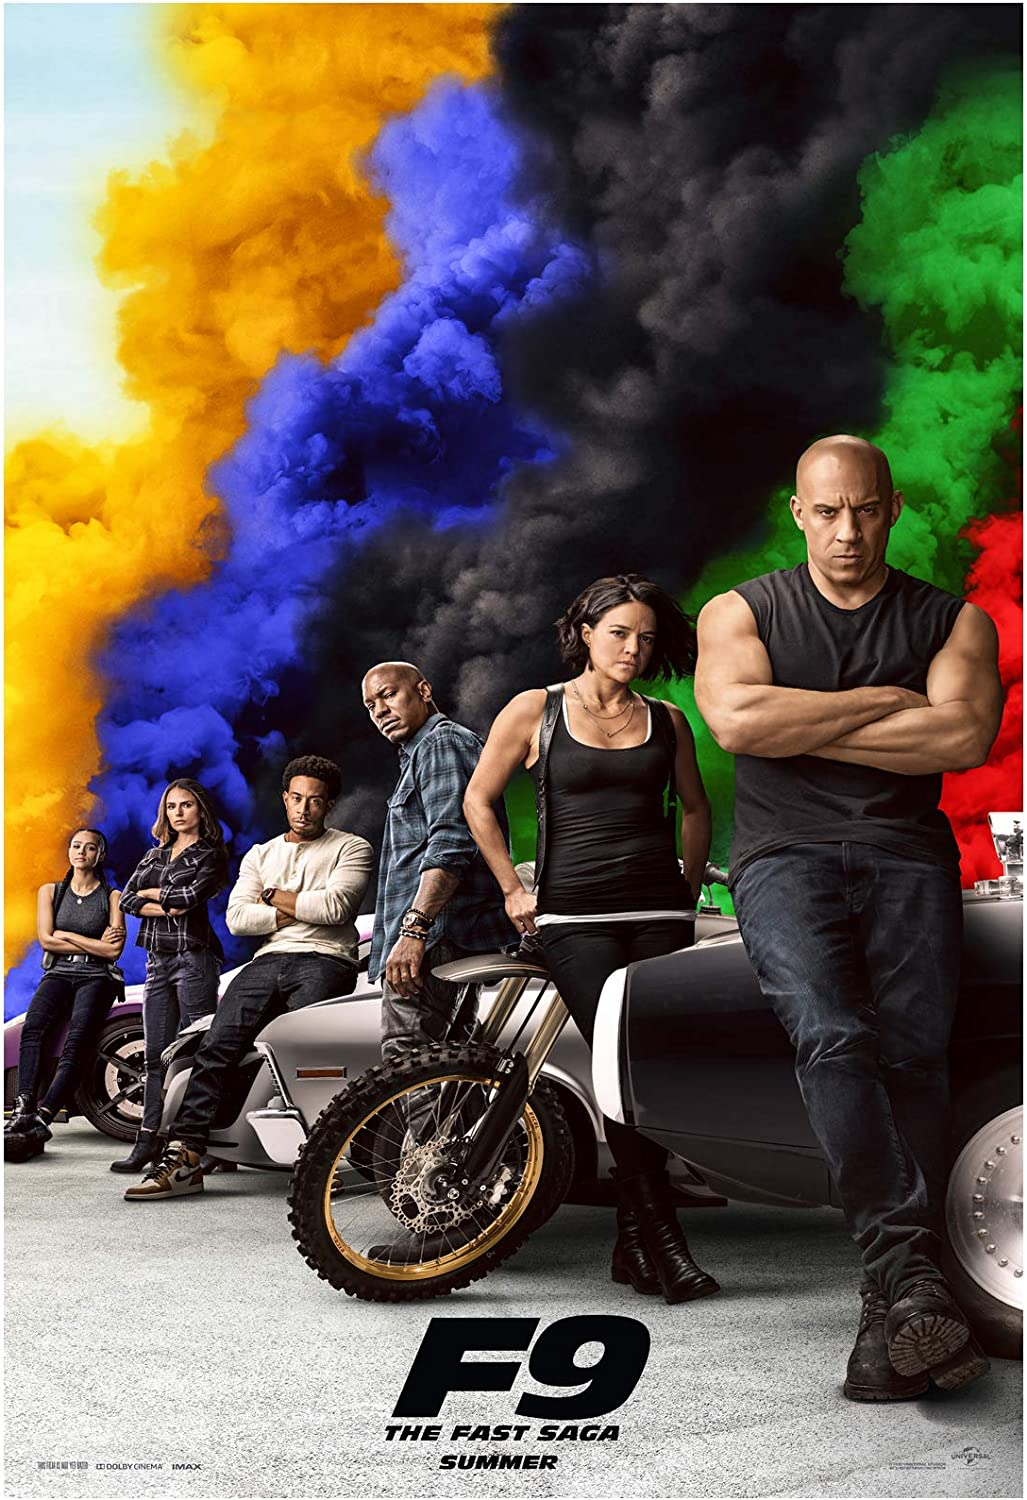 Fast & Furious 9 (2021) Hindi Dubbed Official Trailer 2 1080p HDRip Download